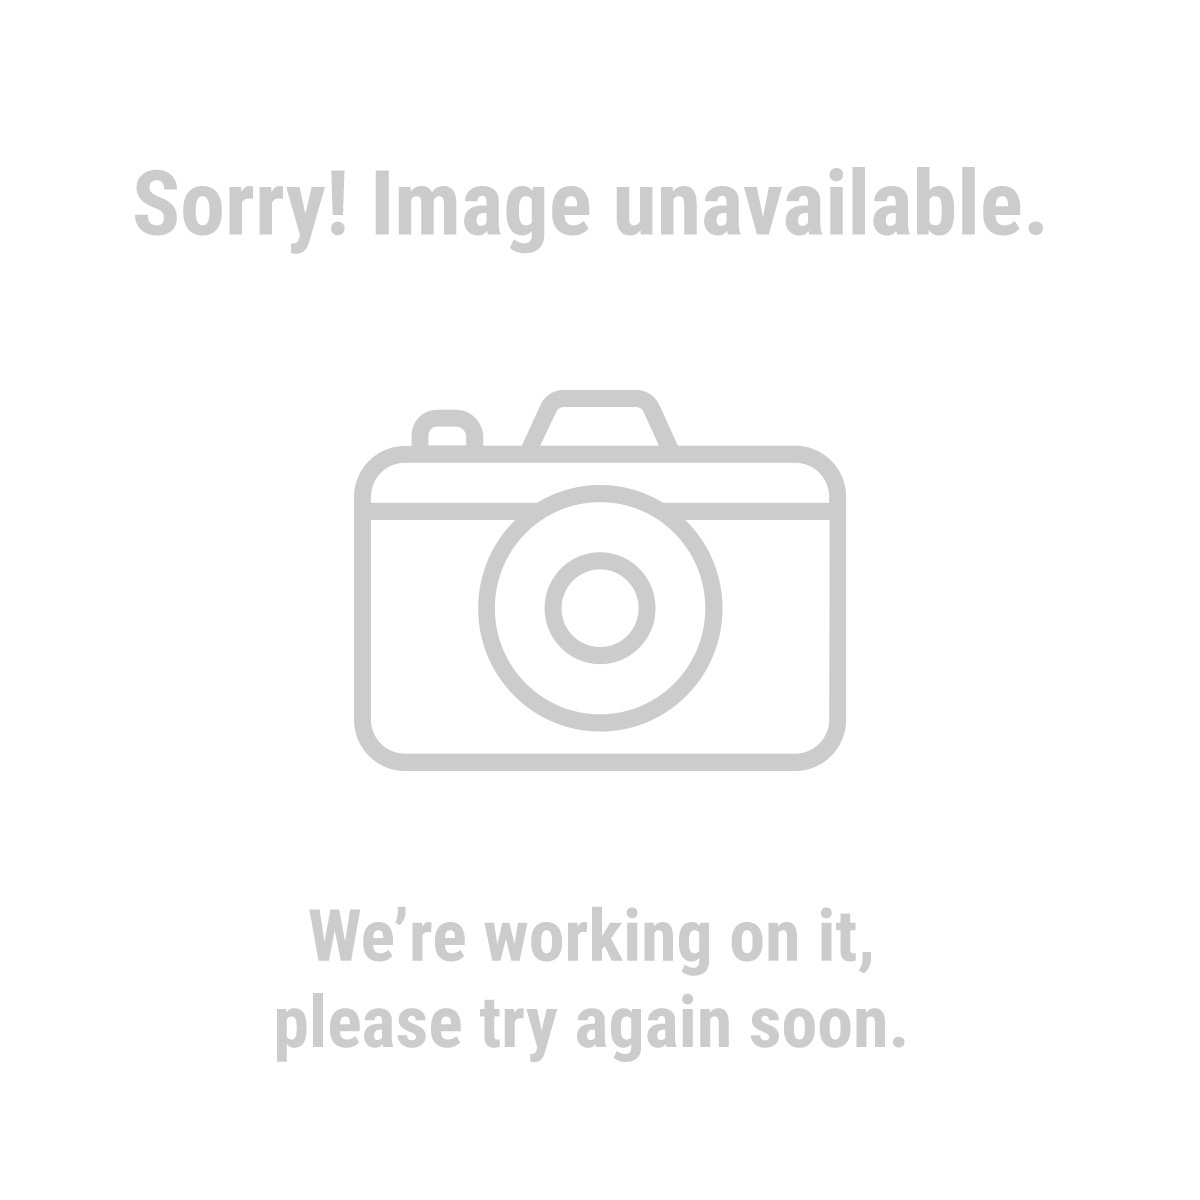 Haul-Master 62837 400 lb. Receiver-Mount Motorcycle Carrier